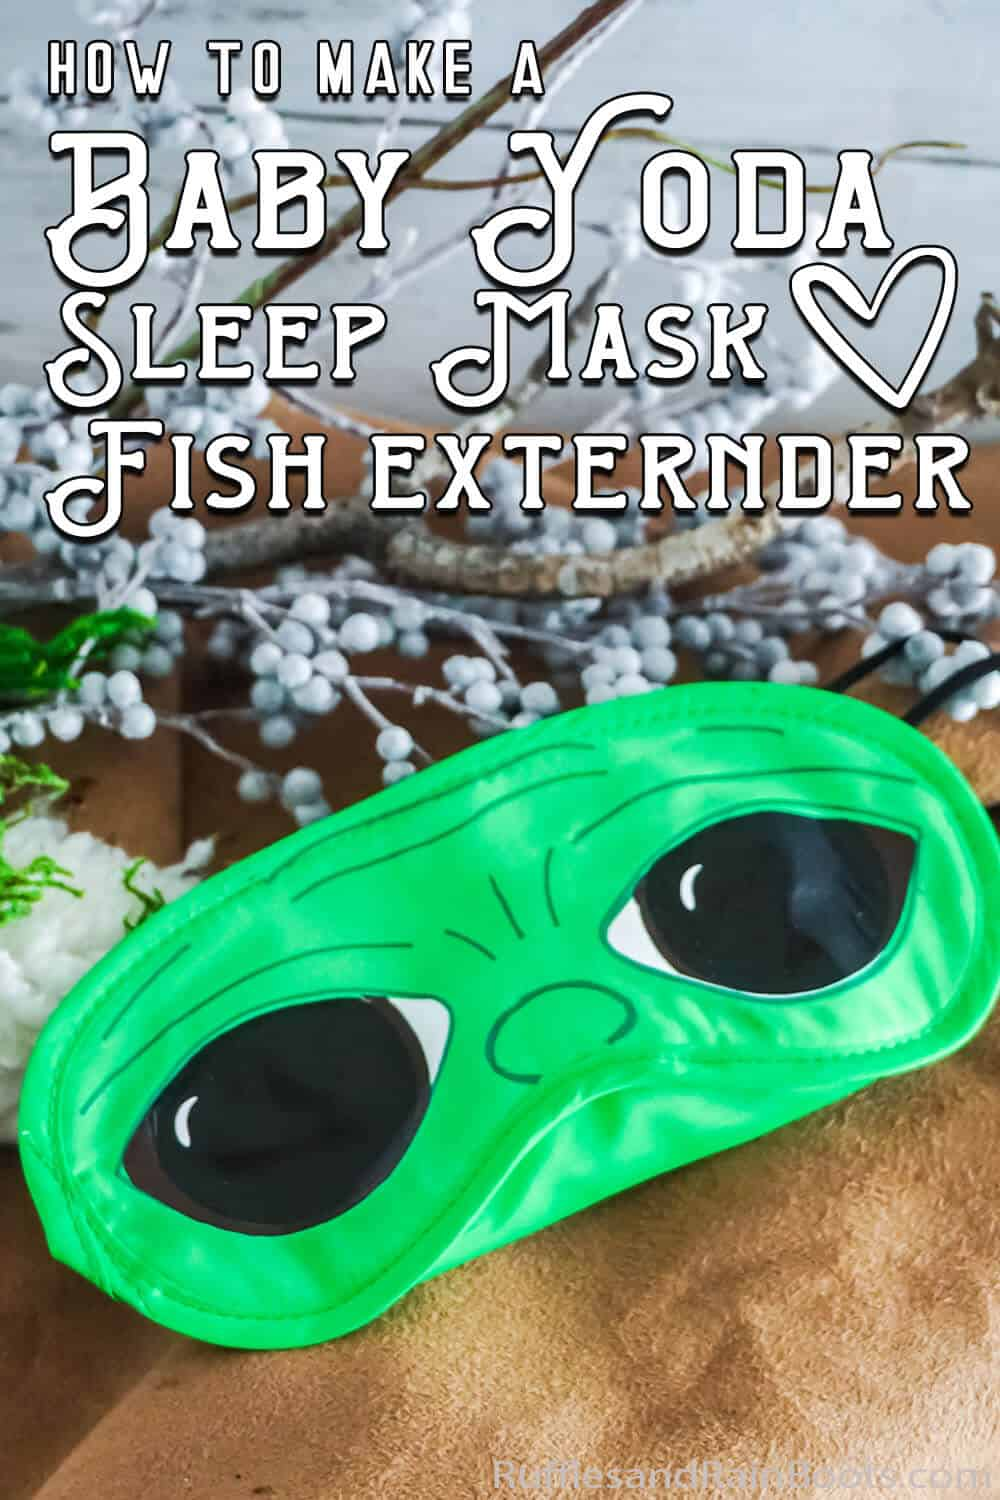 easy star wars craft idea with text which reads how to make a baby yoda sleep mask fish extender